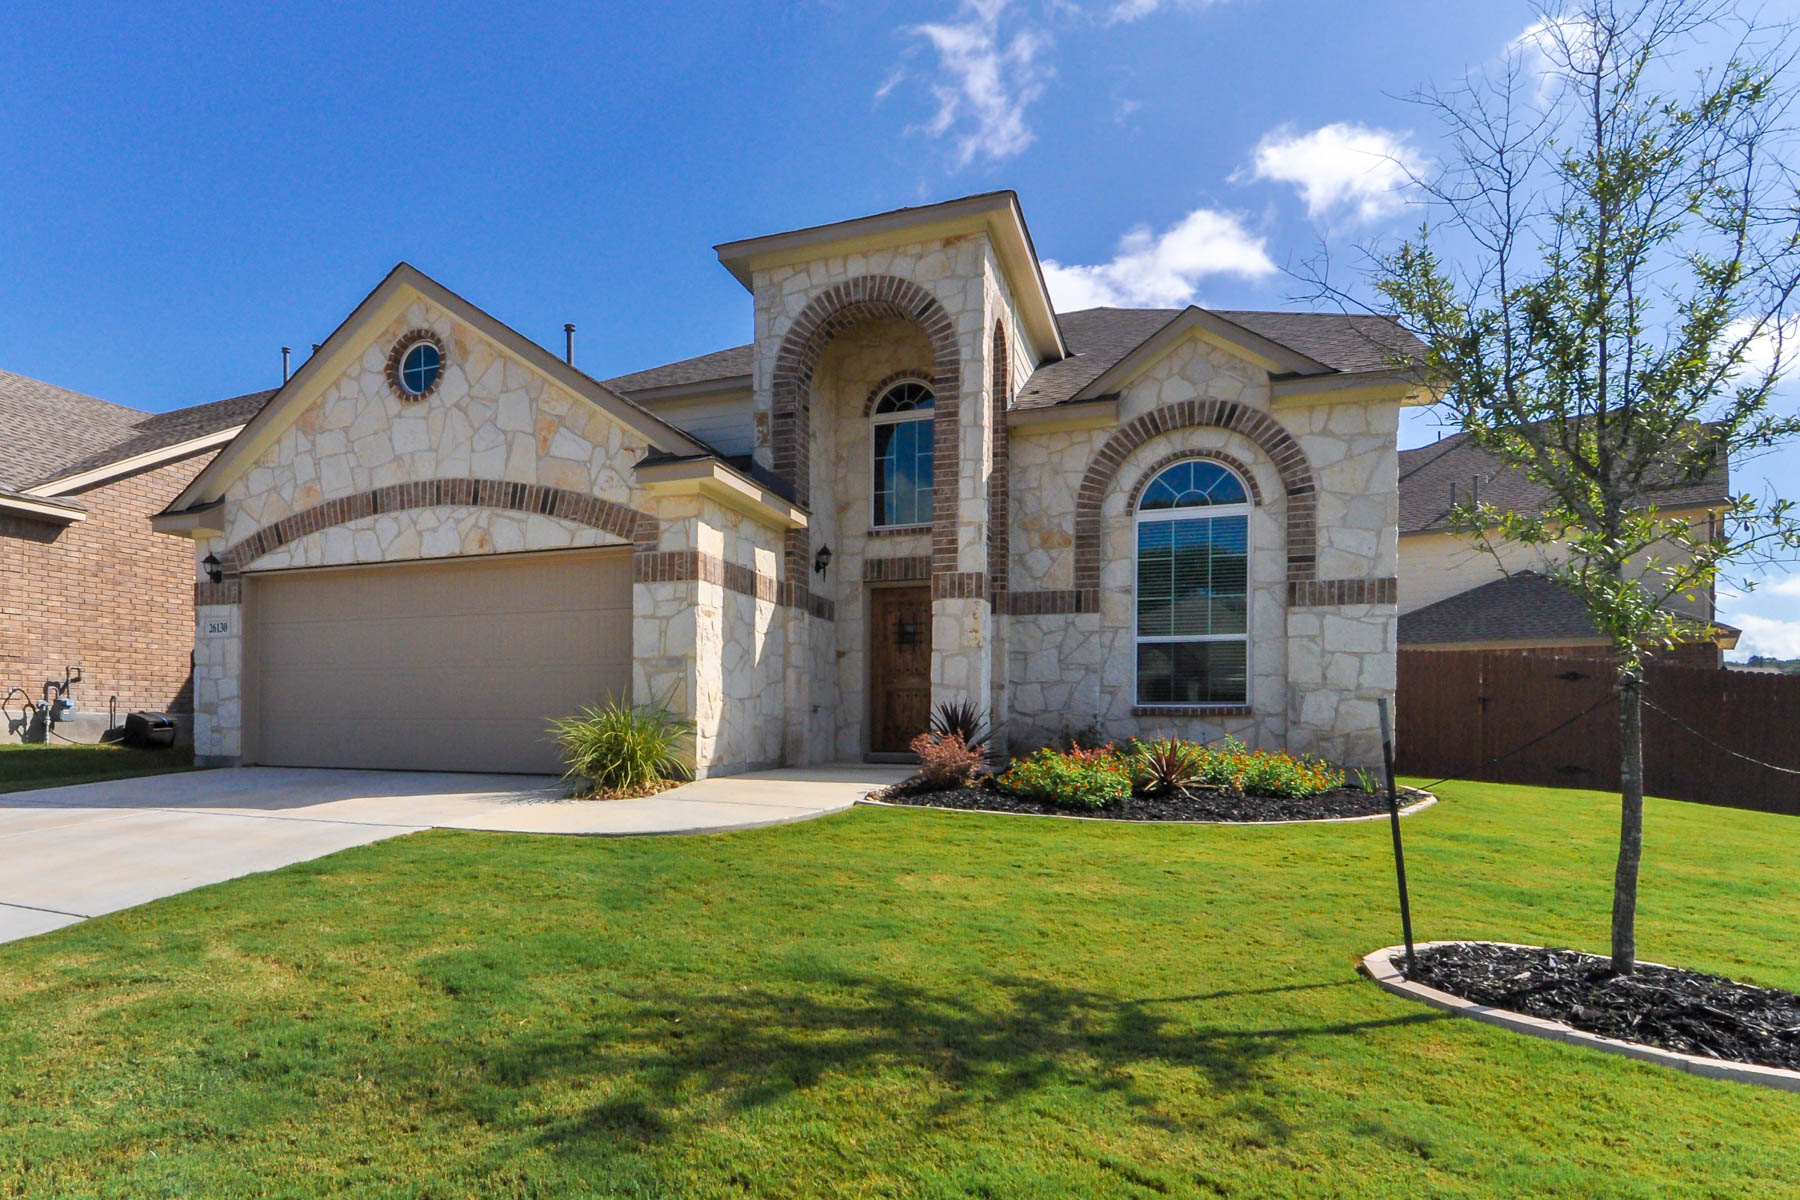 Property For Sale at Gorgeous Dream Home in Timberwood Park